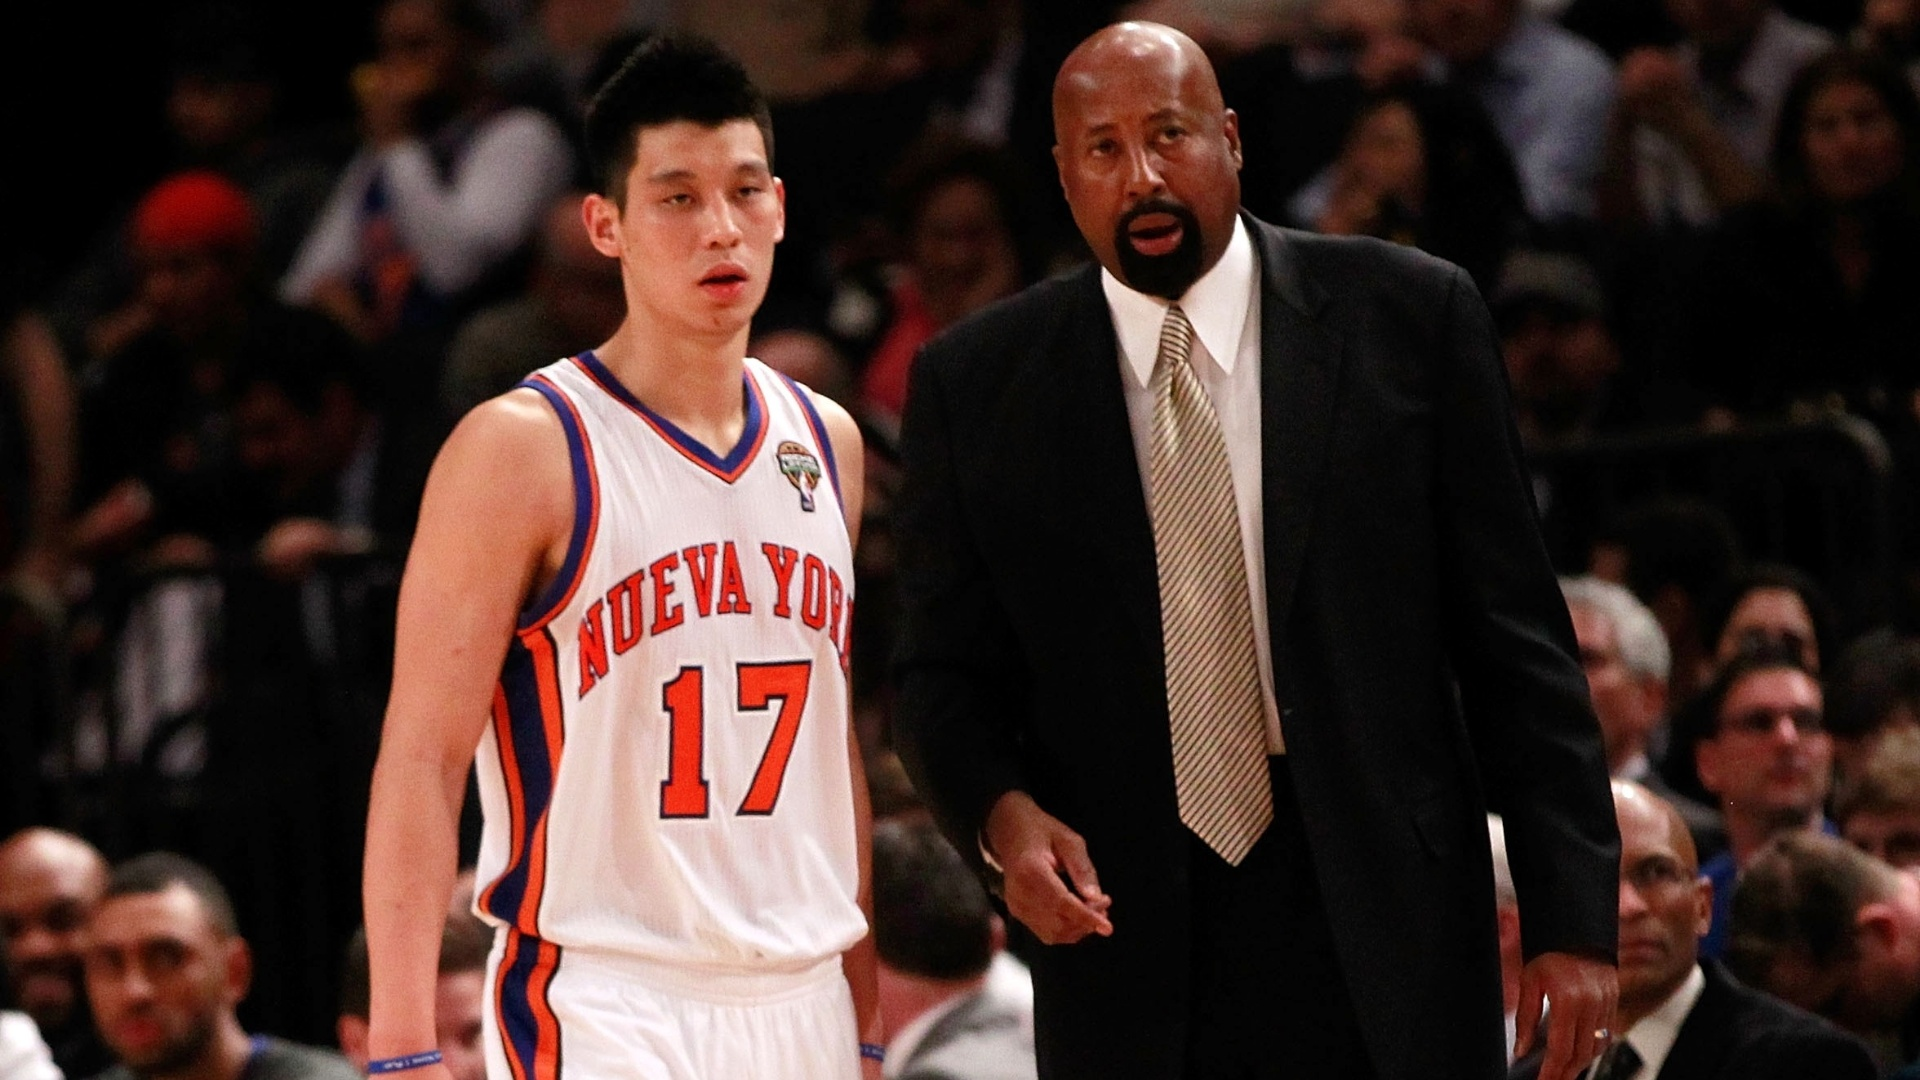 Jeremy Lin conversa com o técnico interino Mike Woodson na vitória do New York Knicks sobre o Portland Trail Blazers (14/03/12)